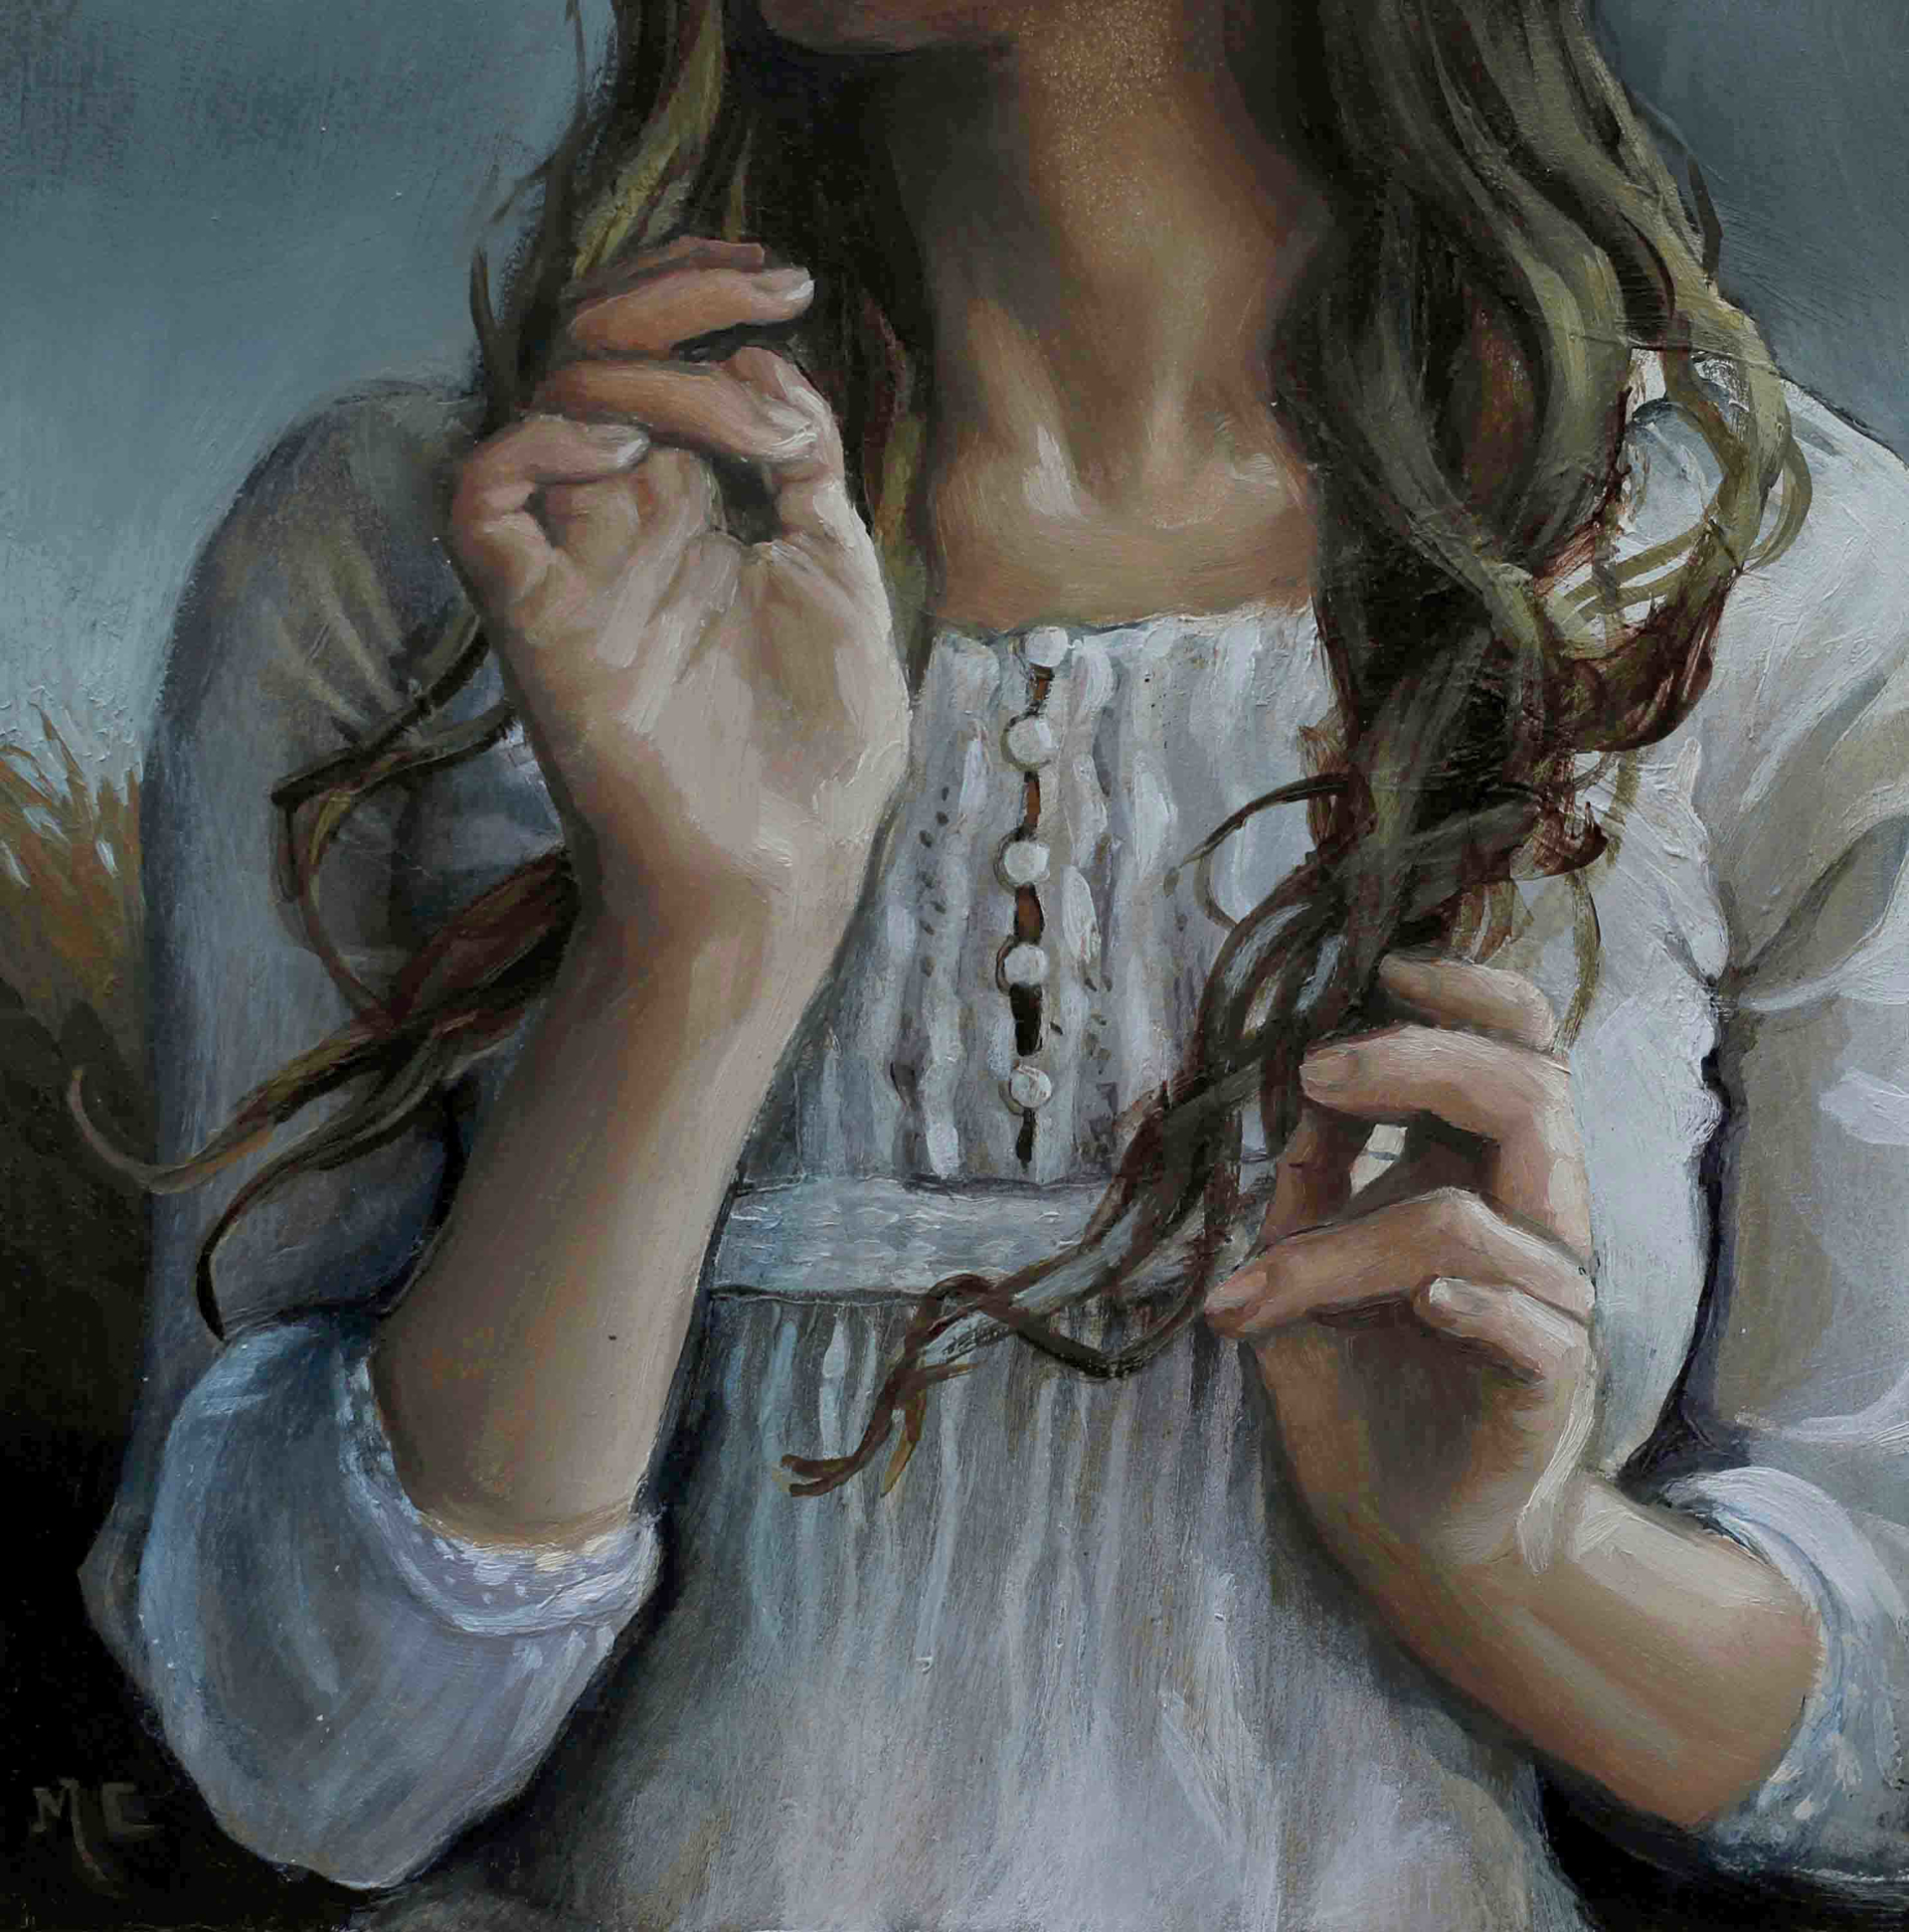 Southern Gothic No 3 by Mary Chiaramonte